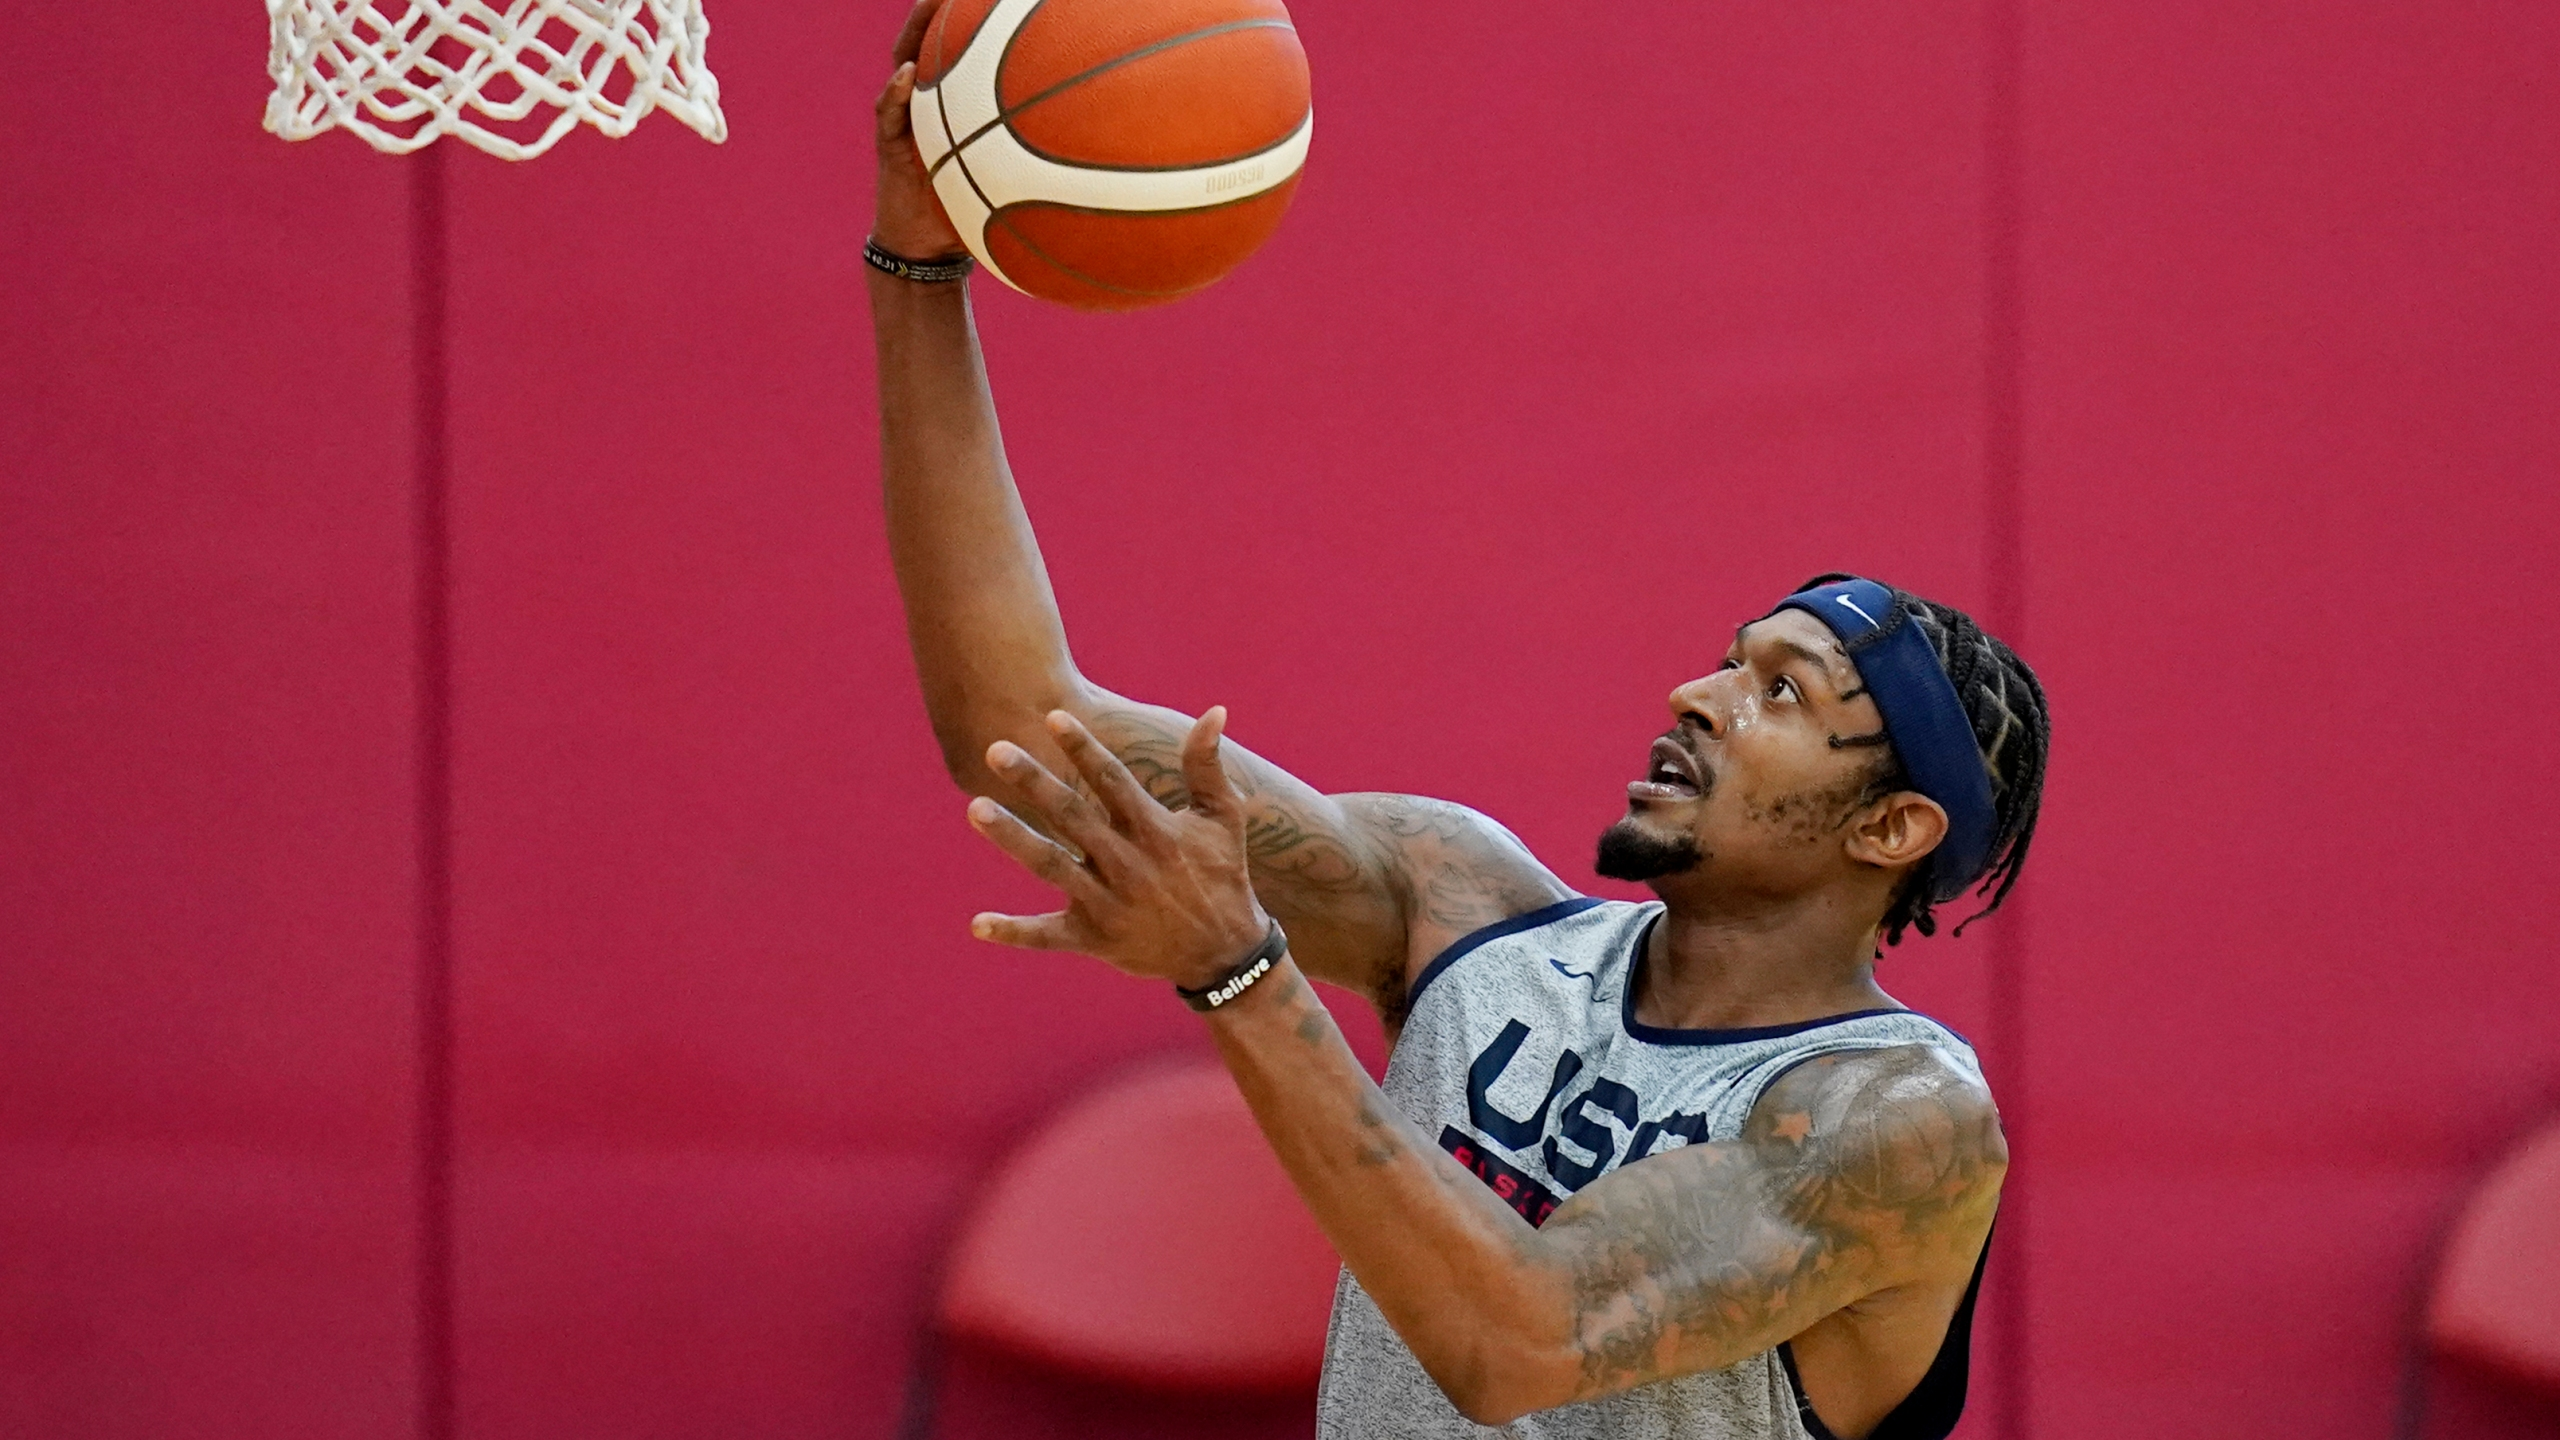 Bradley Beal shoots during practice for USA Basketball on July 6, 2021, in Las Vegas. (AP Photo/John Locher)